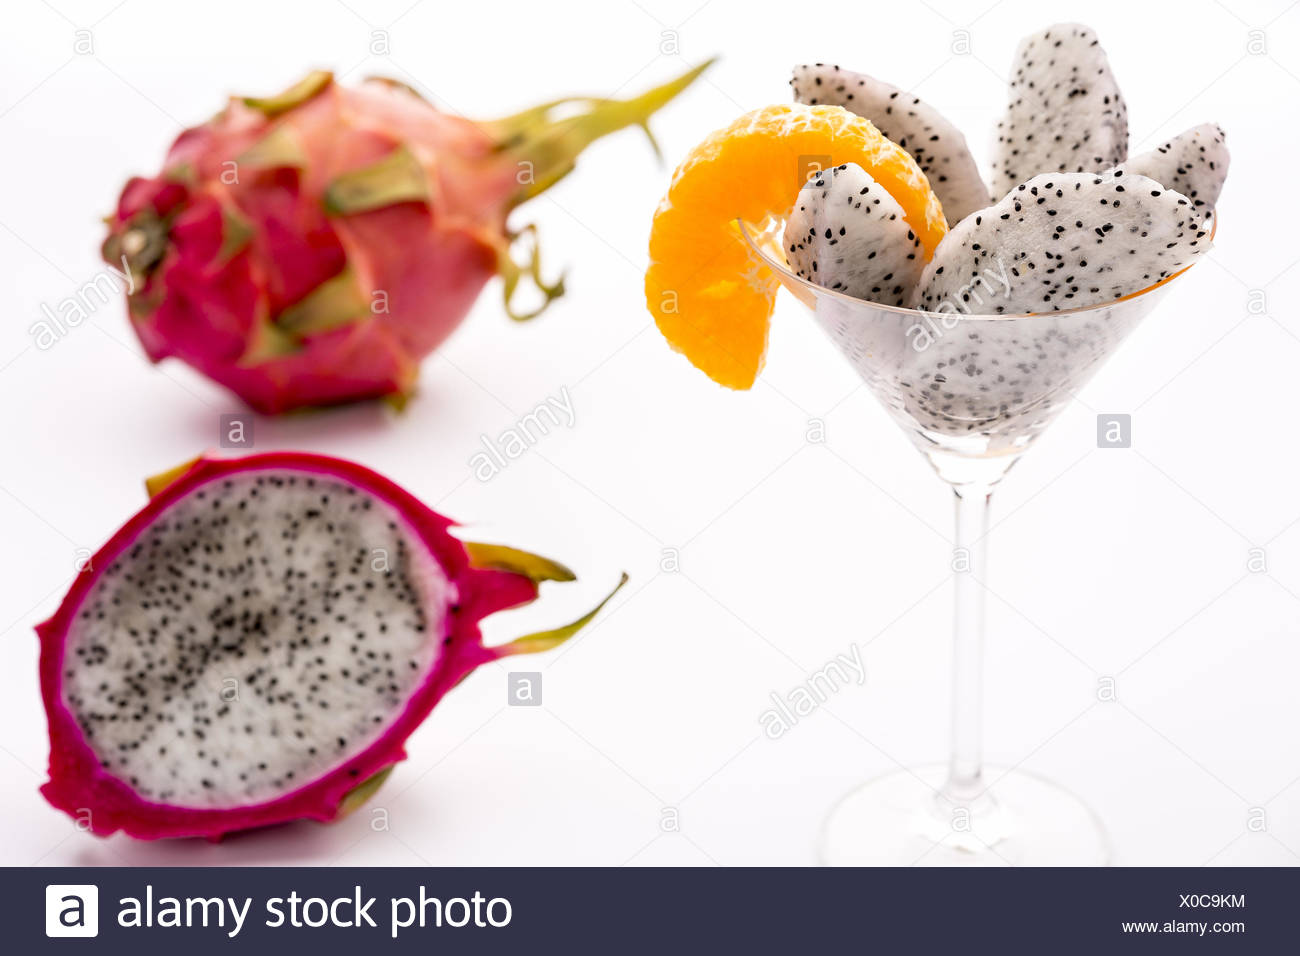 Fruit flesh of the Pitahaya blanca in a glass - Stock Image